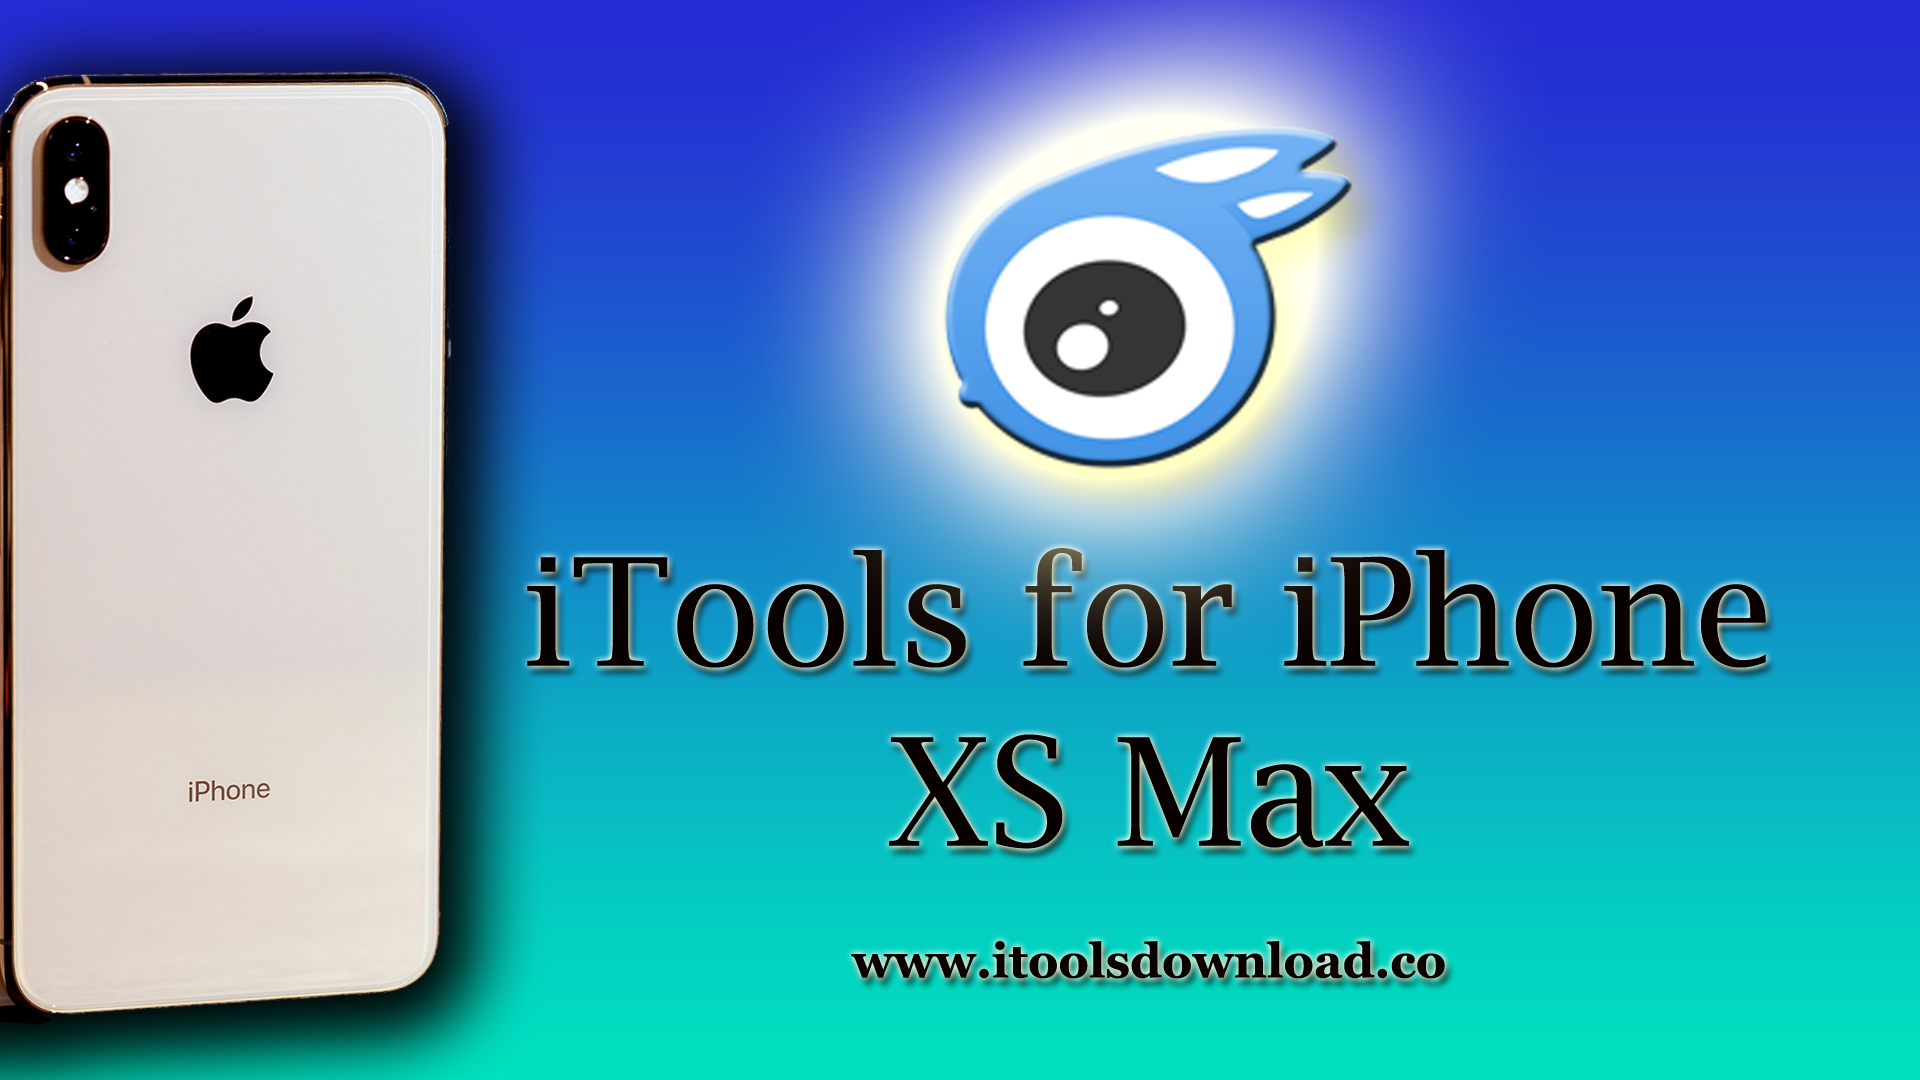 iTools for iPhone XS Max | iTools Download | Iphone, Ipad